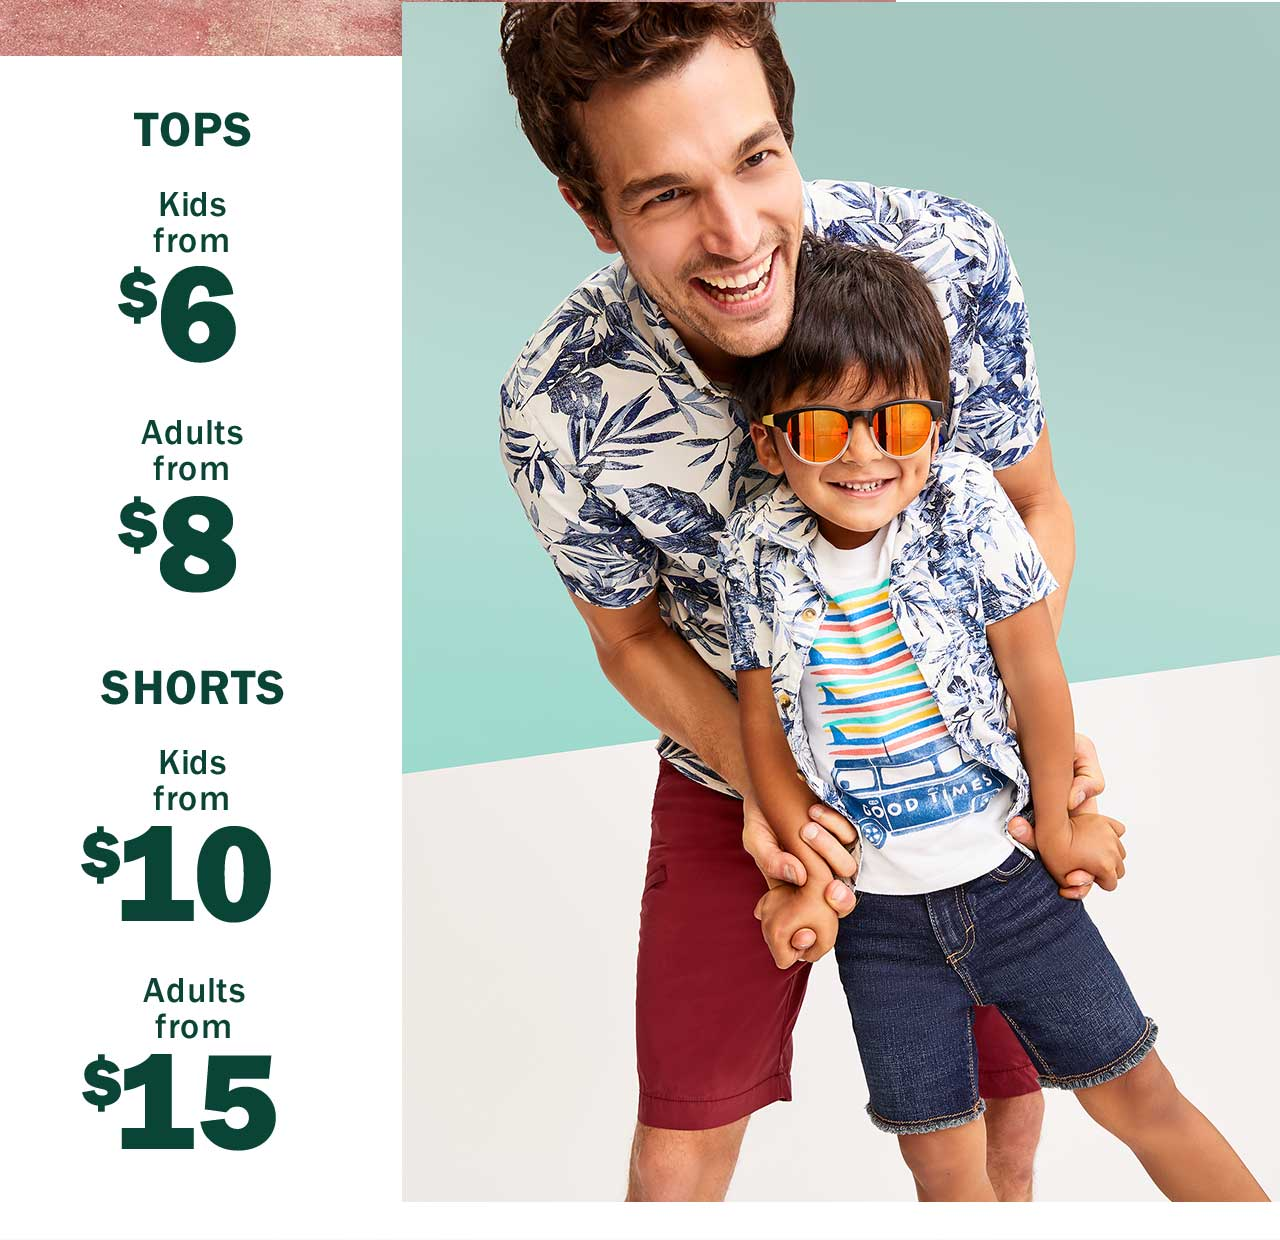 TOPS | Kids from $6 | Adults from $8 | SHORTS | Kids from $10 | Adults from $15